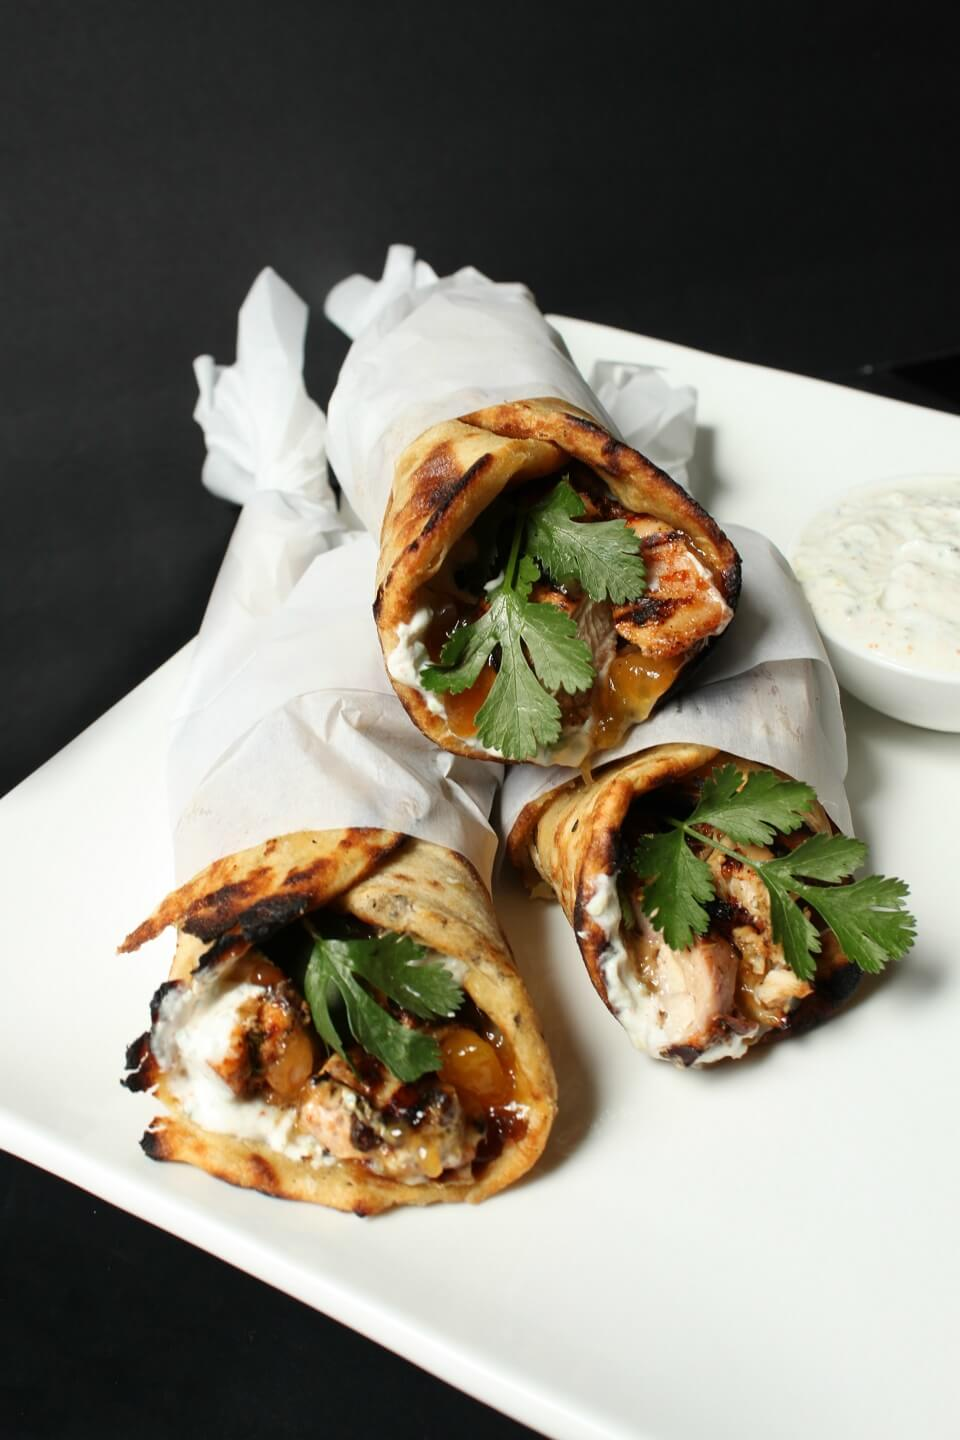 grilled chicken recipe which makes delicious tandoori chicken wrapped in paratha along with cilantro, mango chutney, and raita.